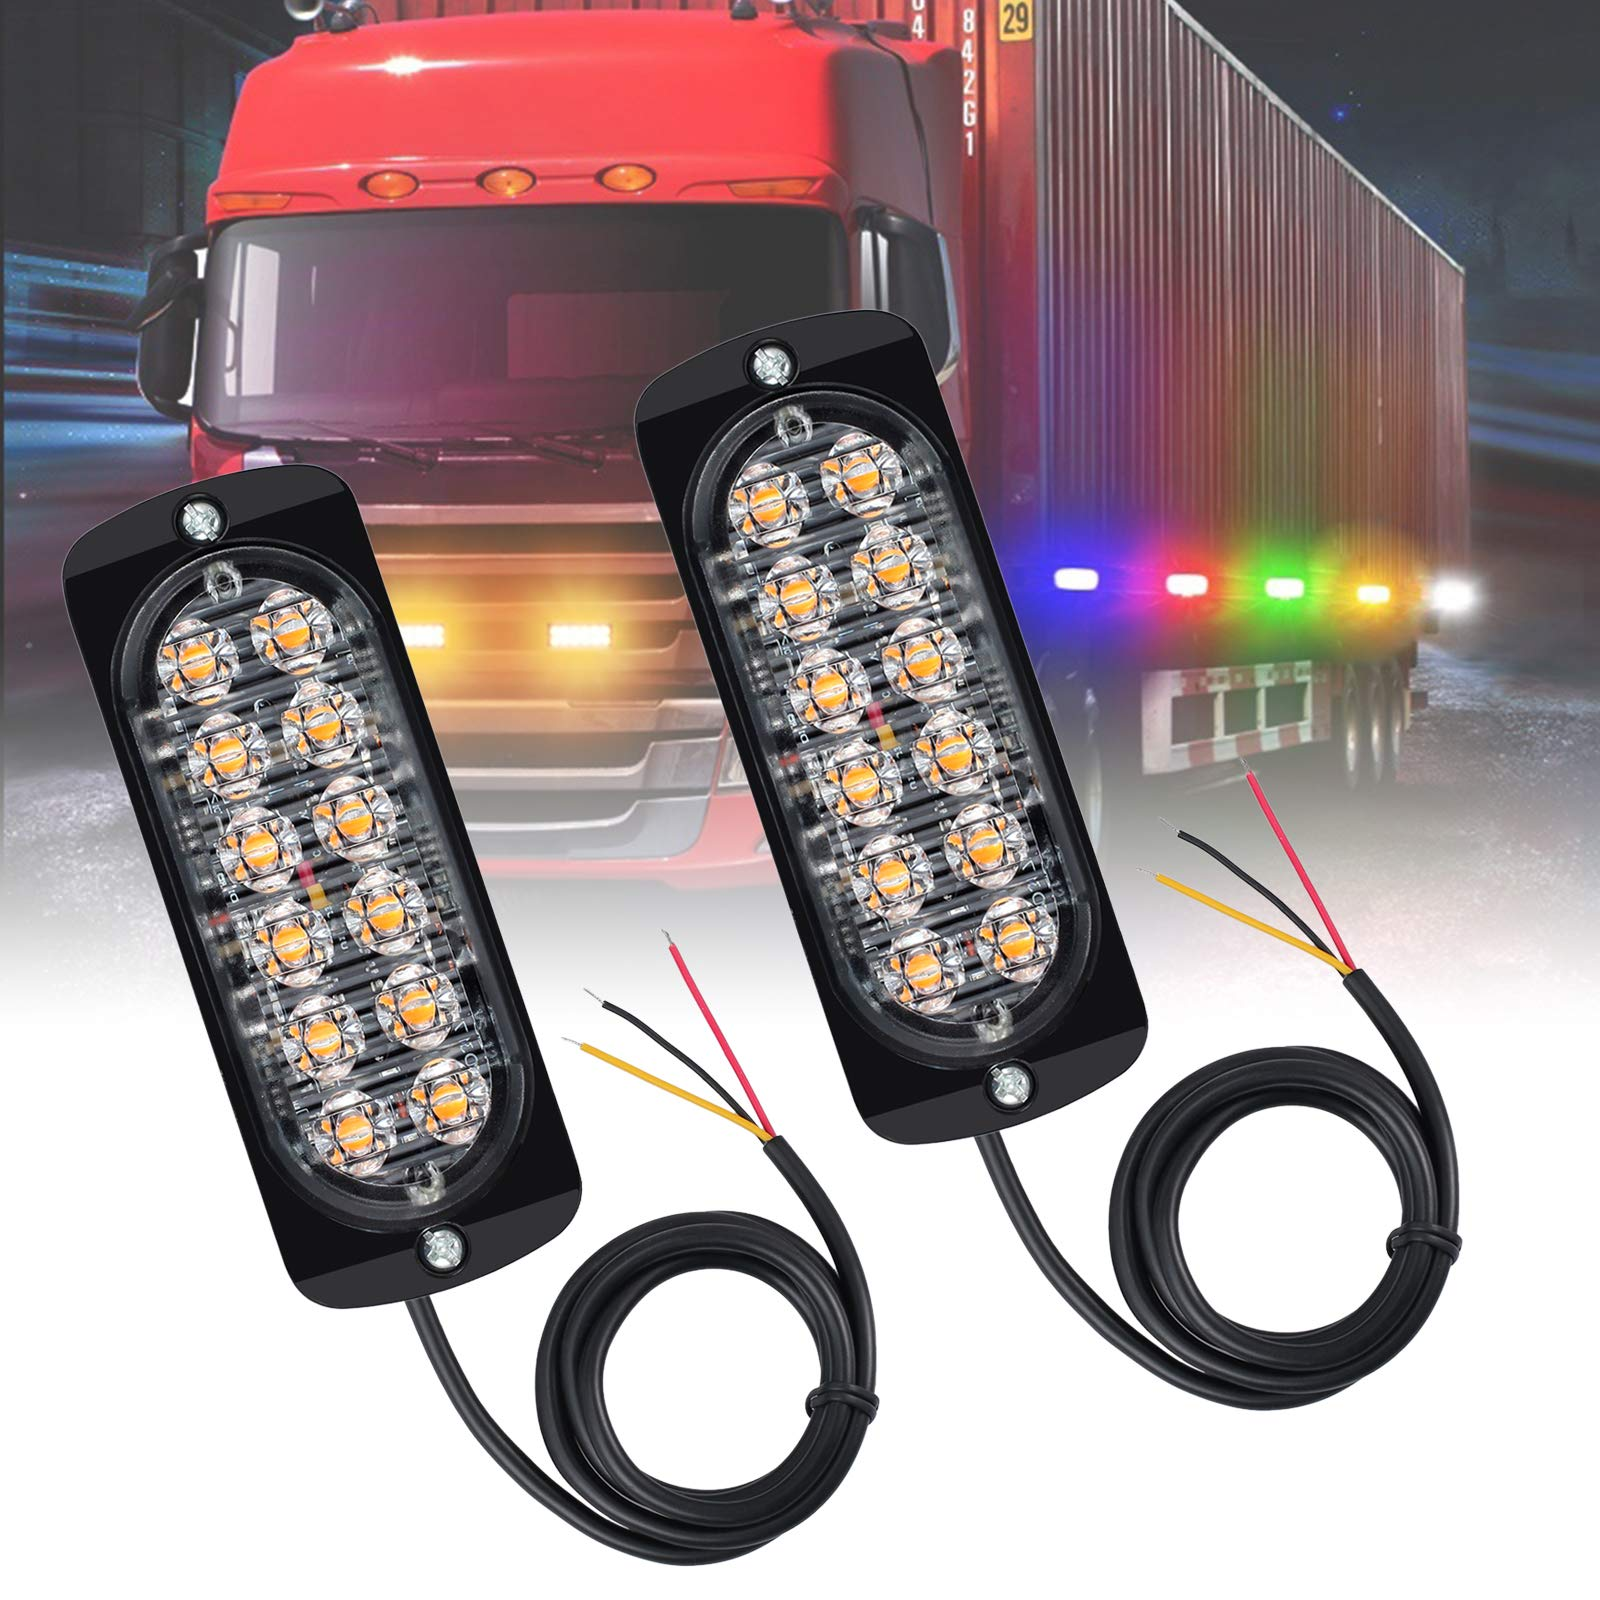 Justech 72LEDs 18W Car Emergenecy Warning Flashing Lights Amber Hazard Beacon Lights Bar Recovery Strobe Light 12V 24V with Magnetic Base for Car Vehicle Truck Trailer